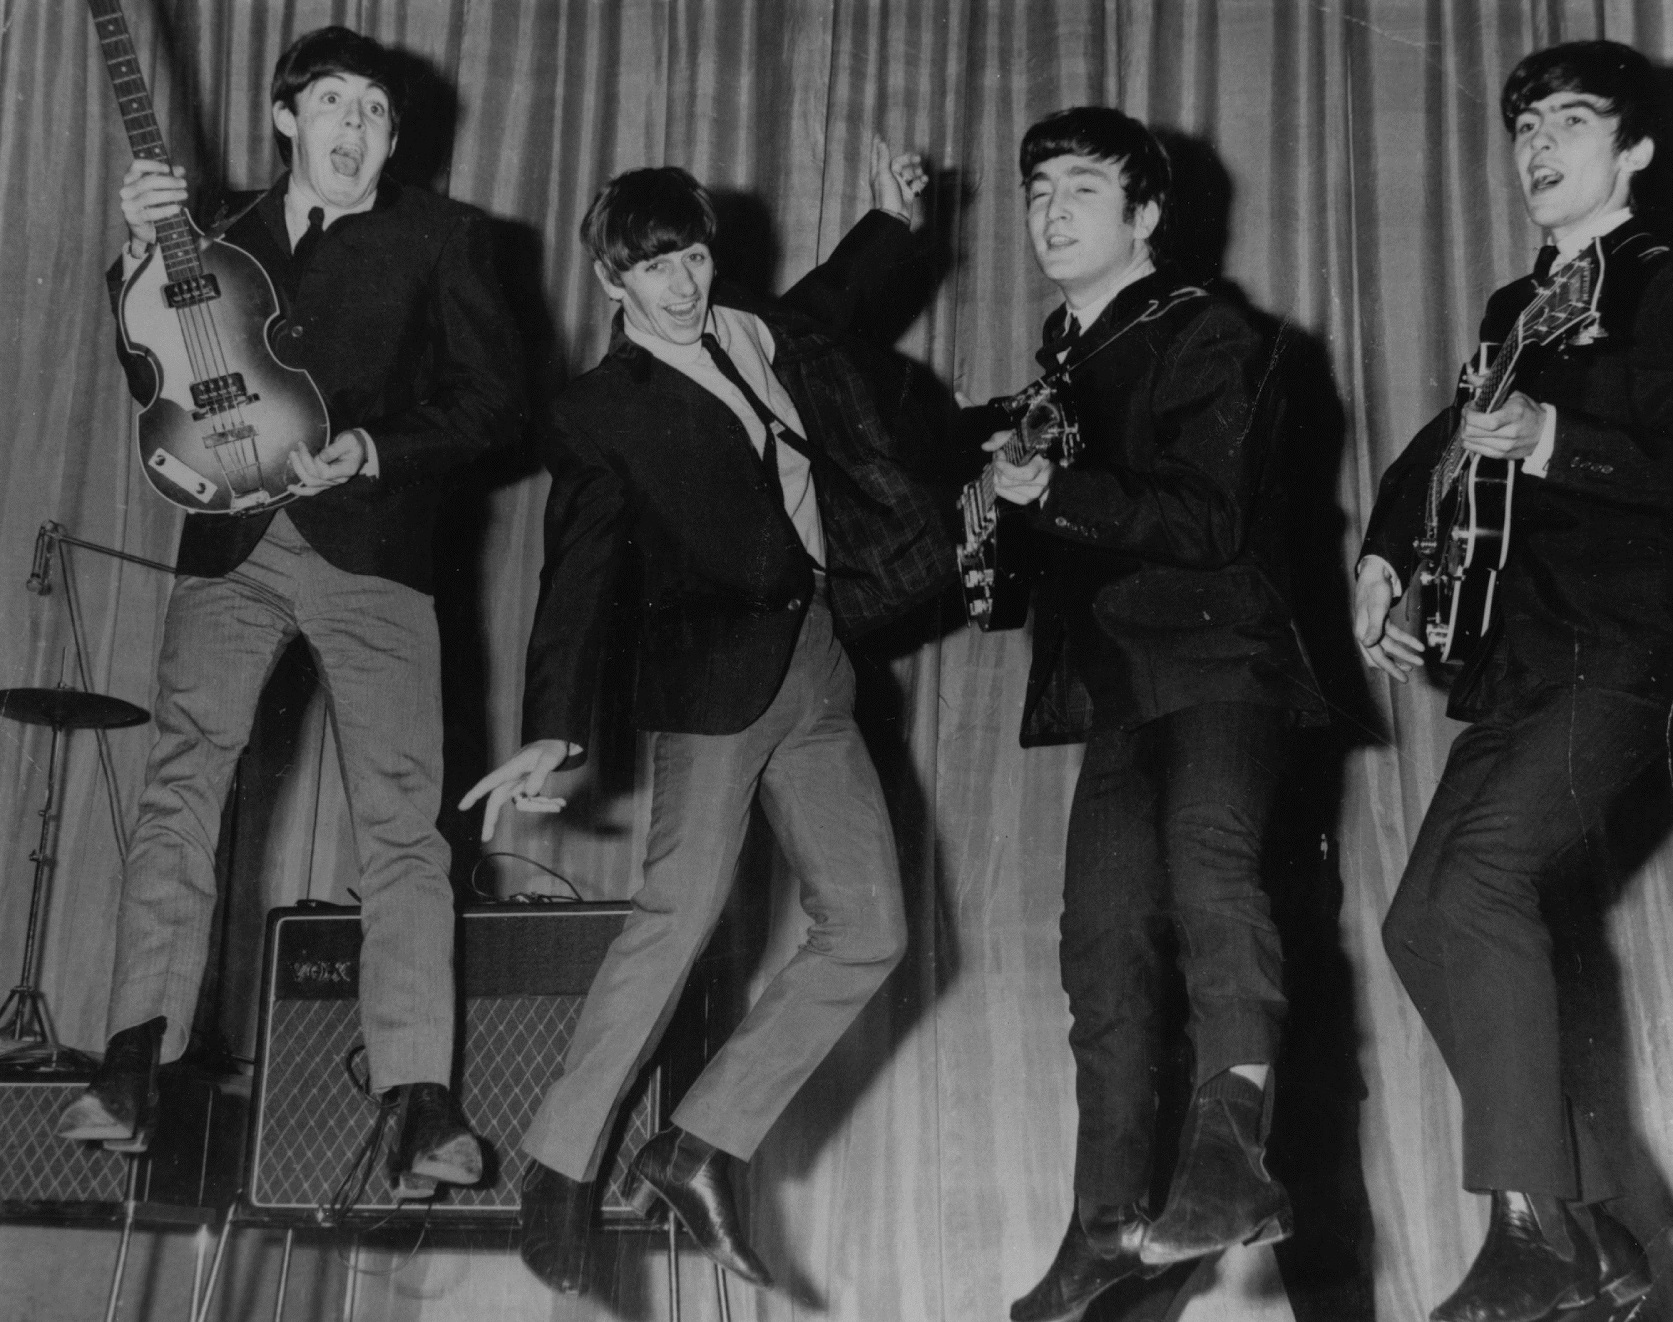 The Beatles rehearsing at the Prince of Wales Theatre for their Royal Variety Performance.